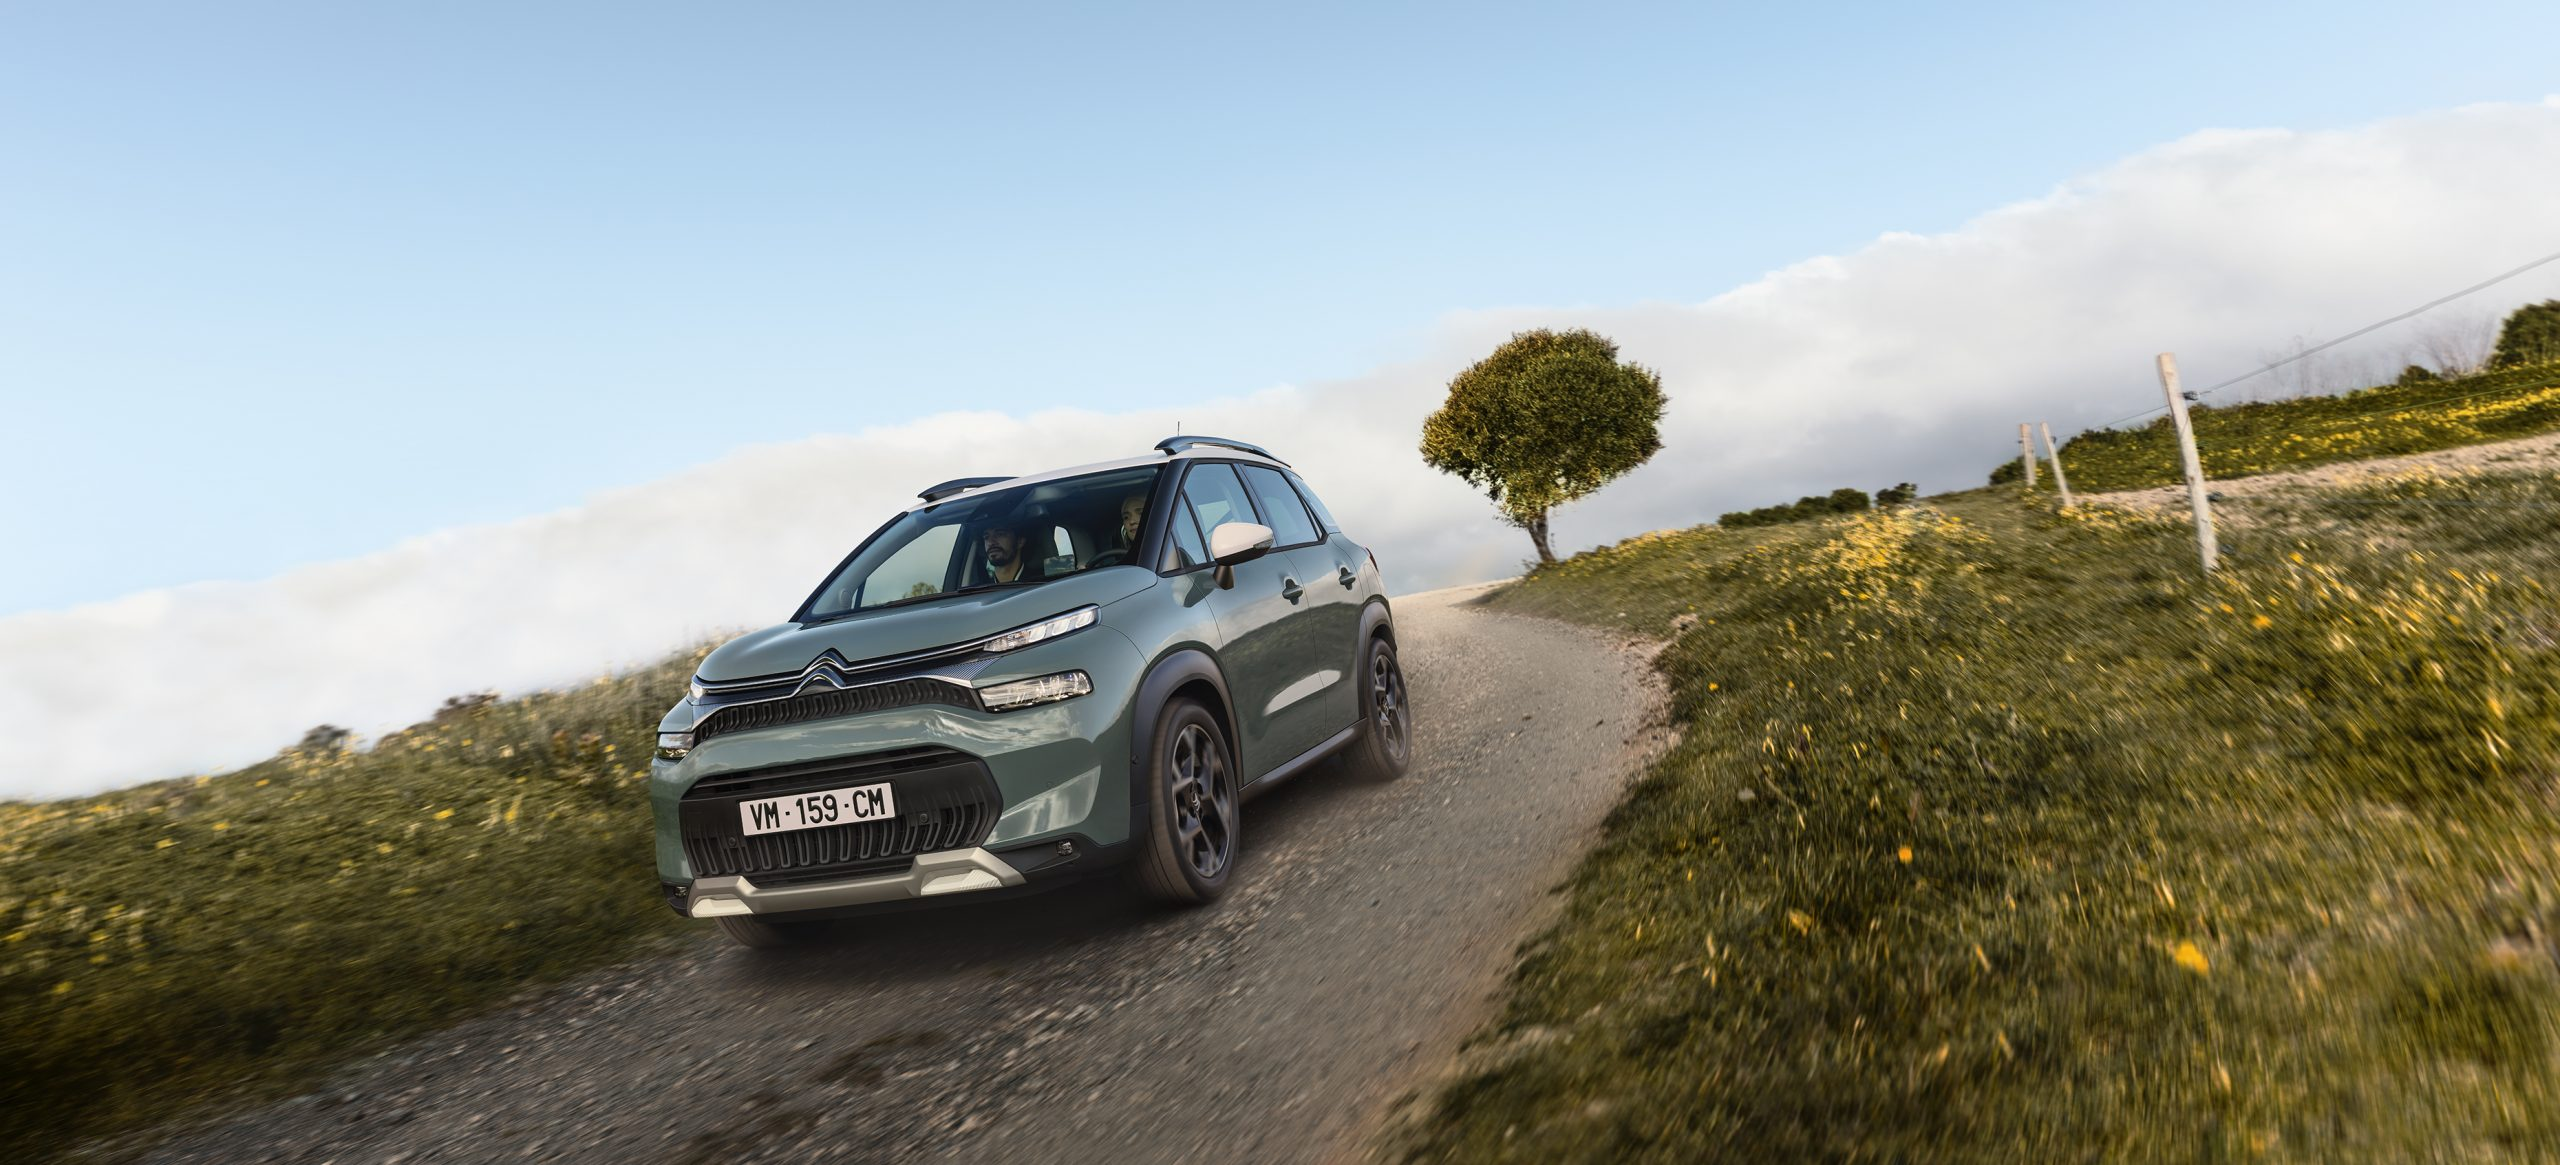 c3 aircross on tougher terrain using new features